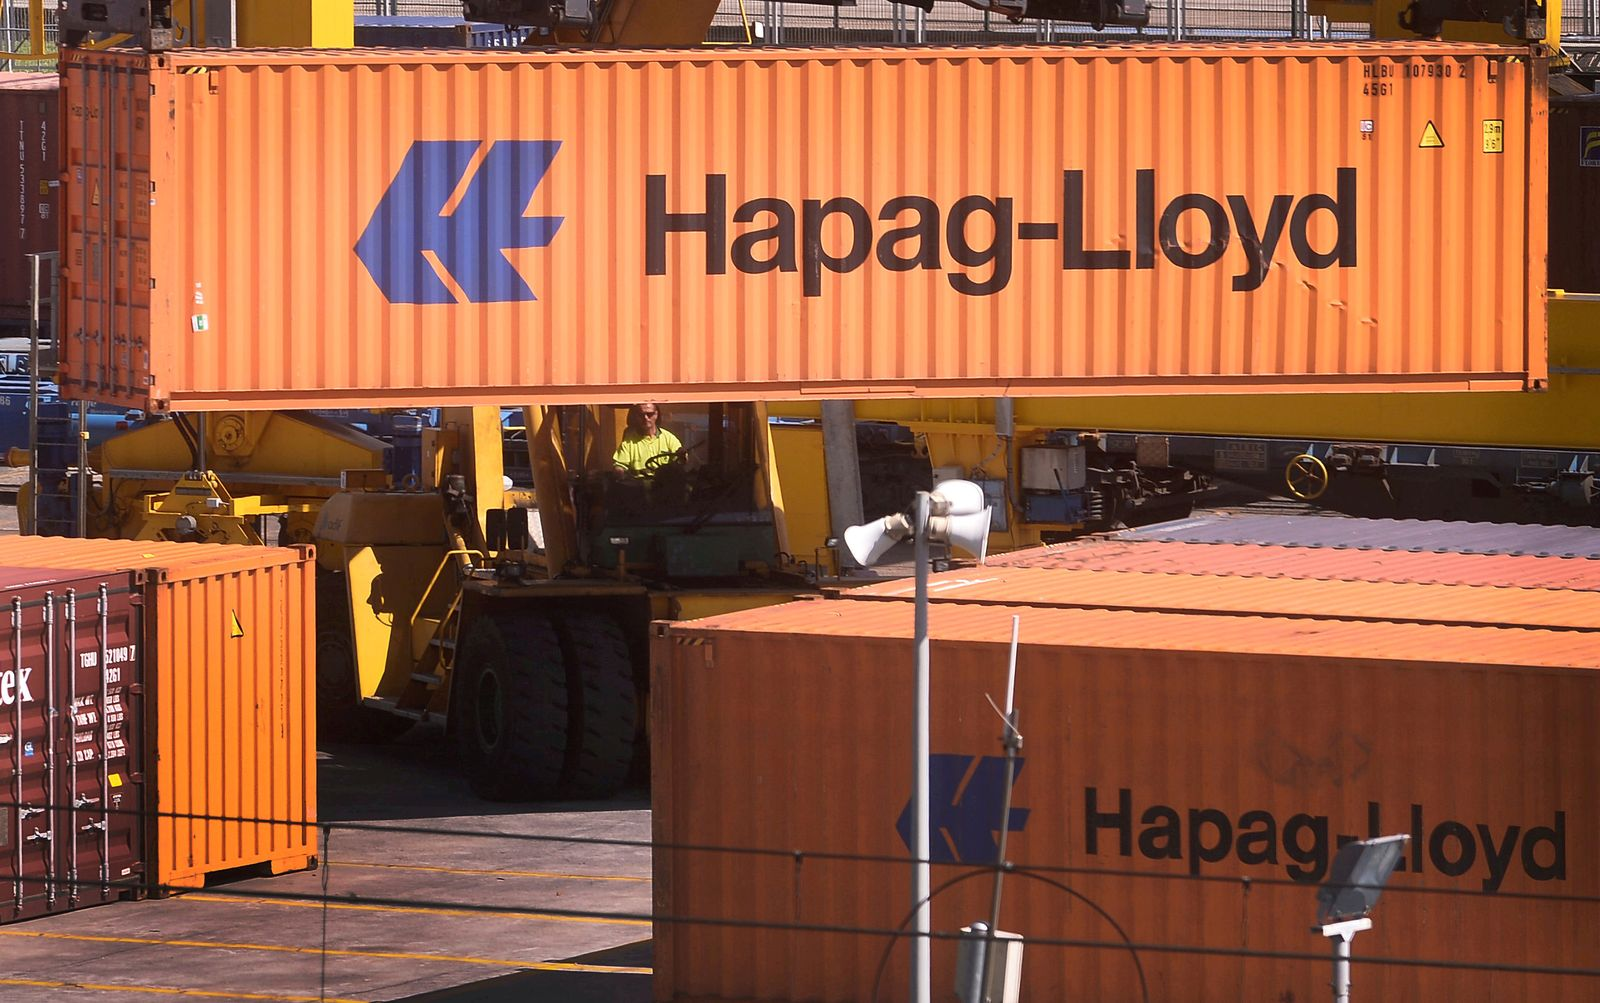 HAPAG LLOYD-OUTLOOK/